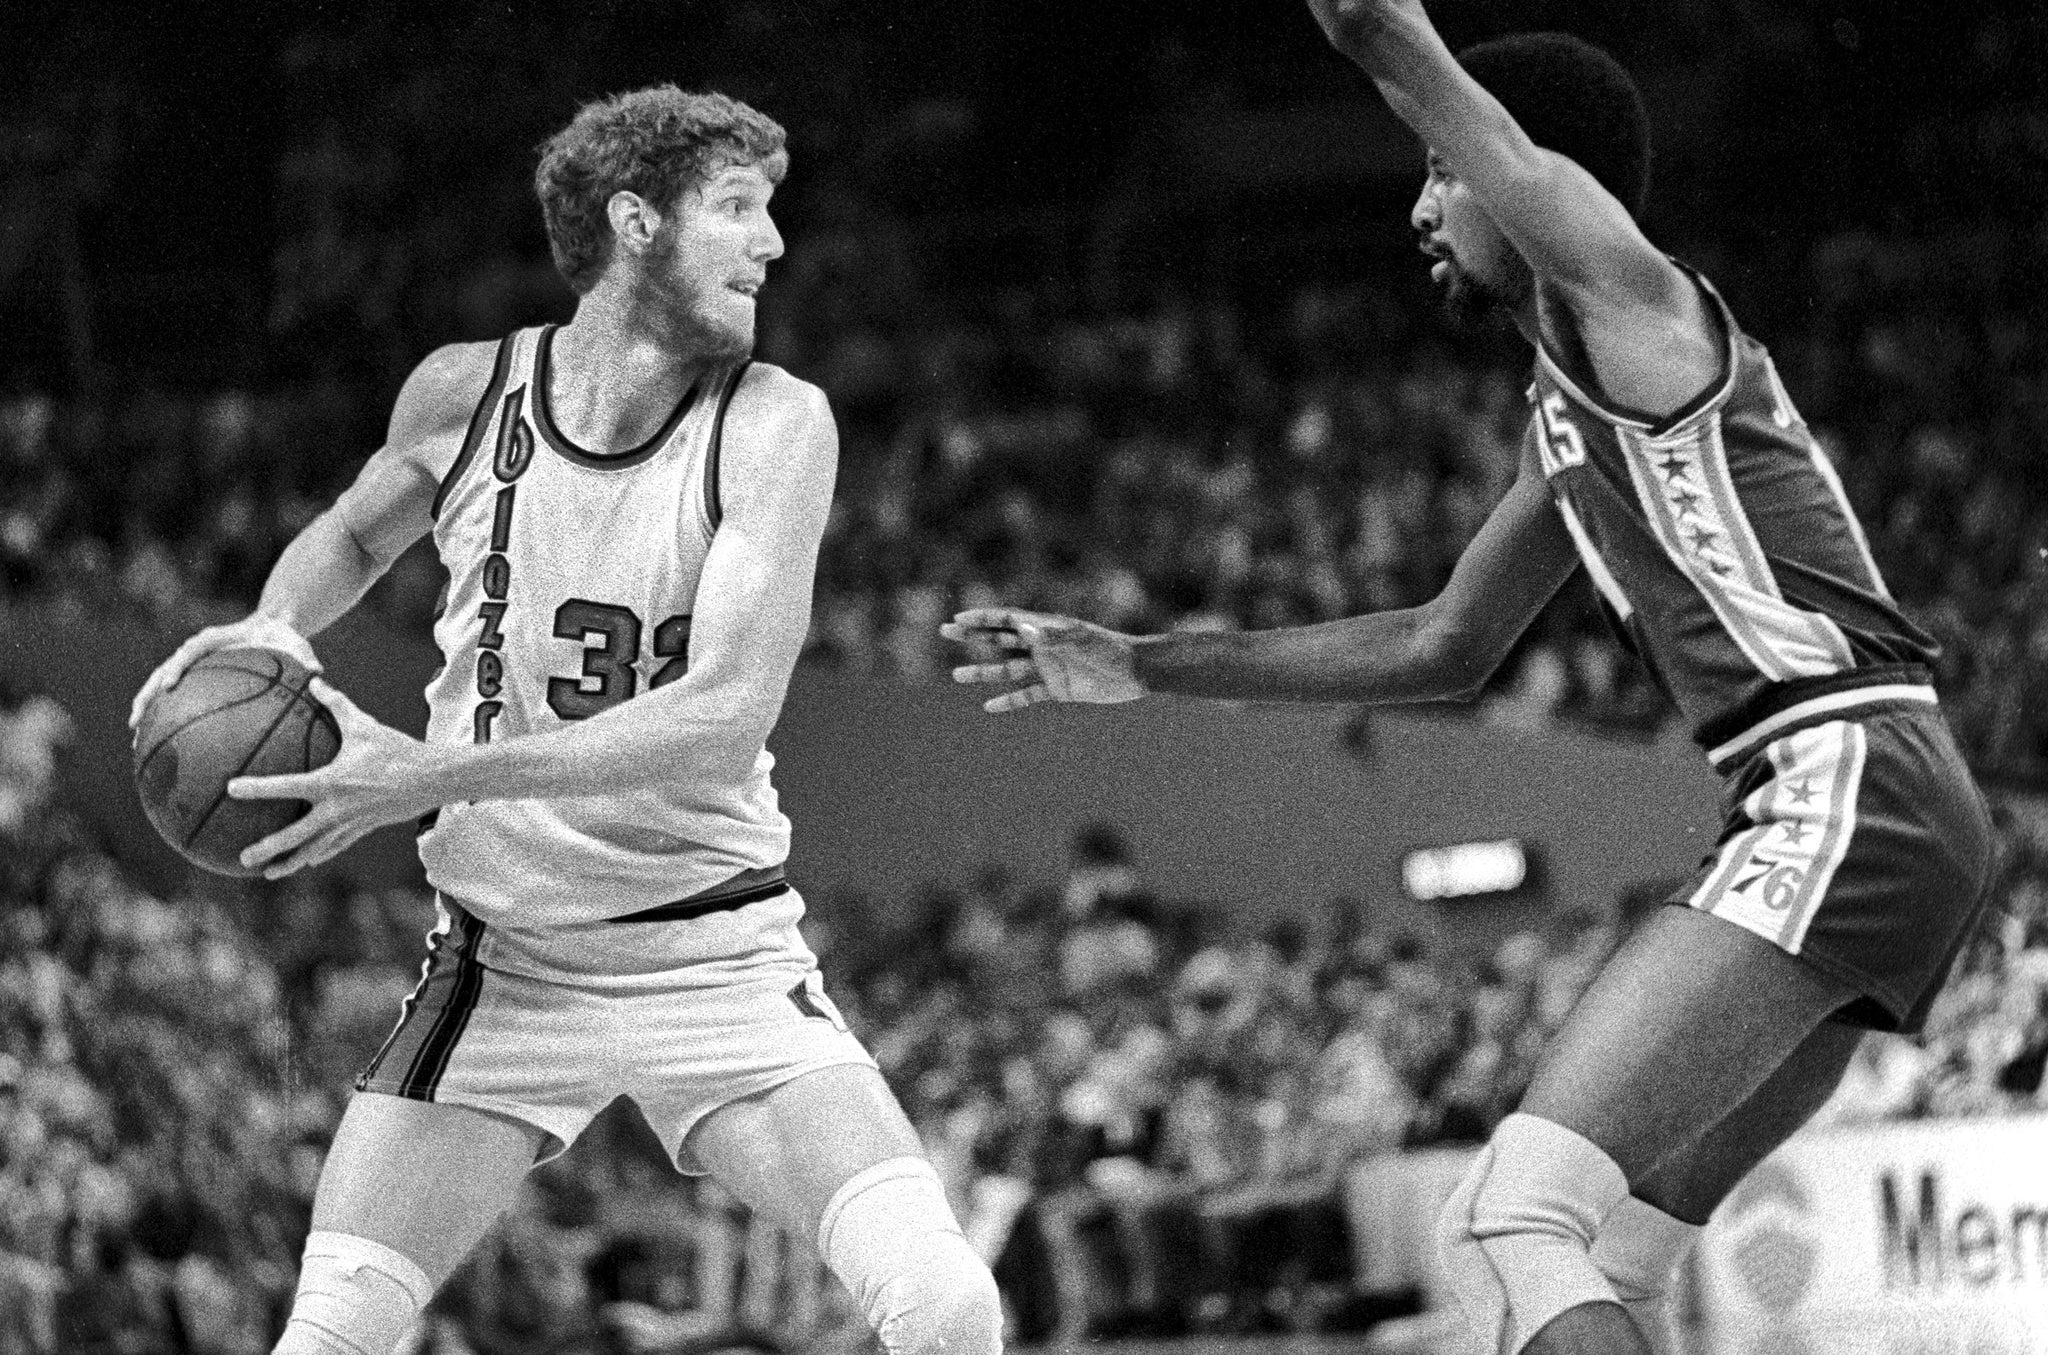 Bill Walton (32) was one of the best passing big men in the NBA. In the 1977 NBA Finals he led the Blazers with 5.2 assists per game. -- MICHAEL LLOYD / THE OREGONIAN/OREGONLIVE